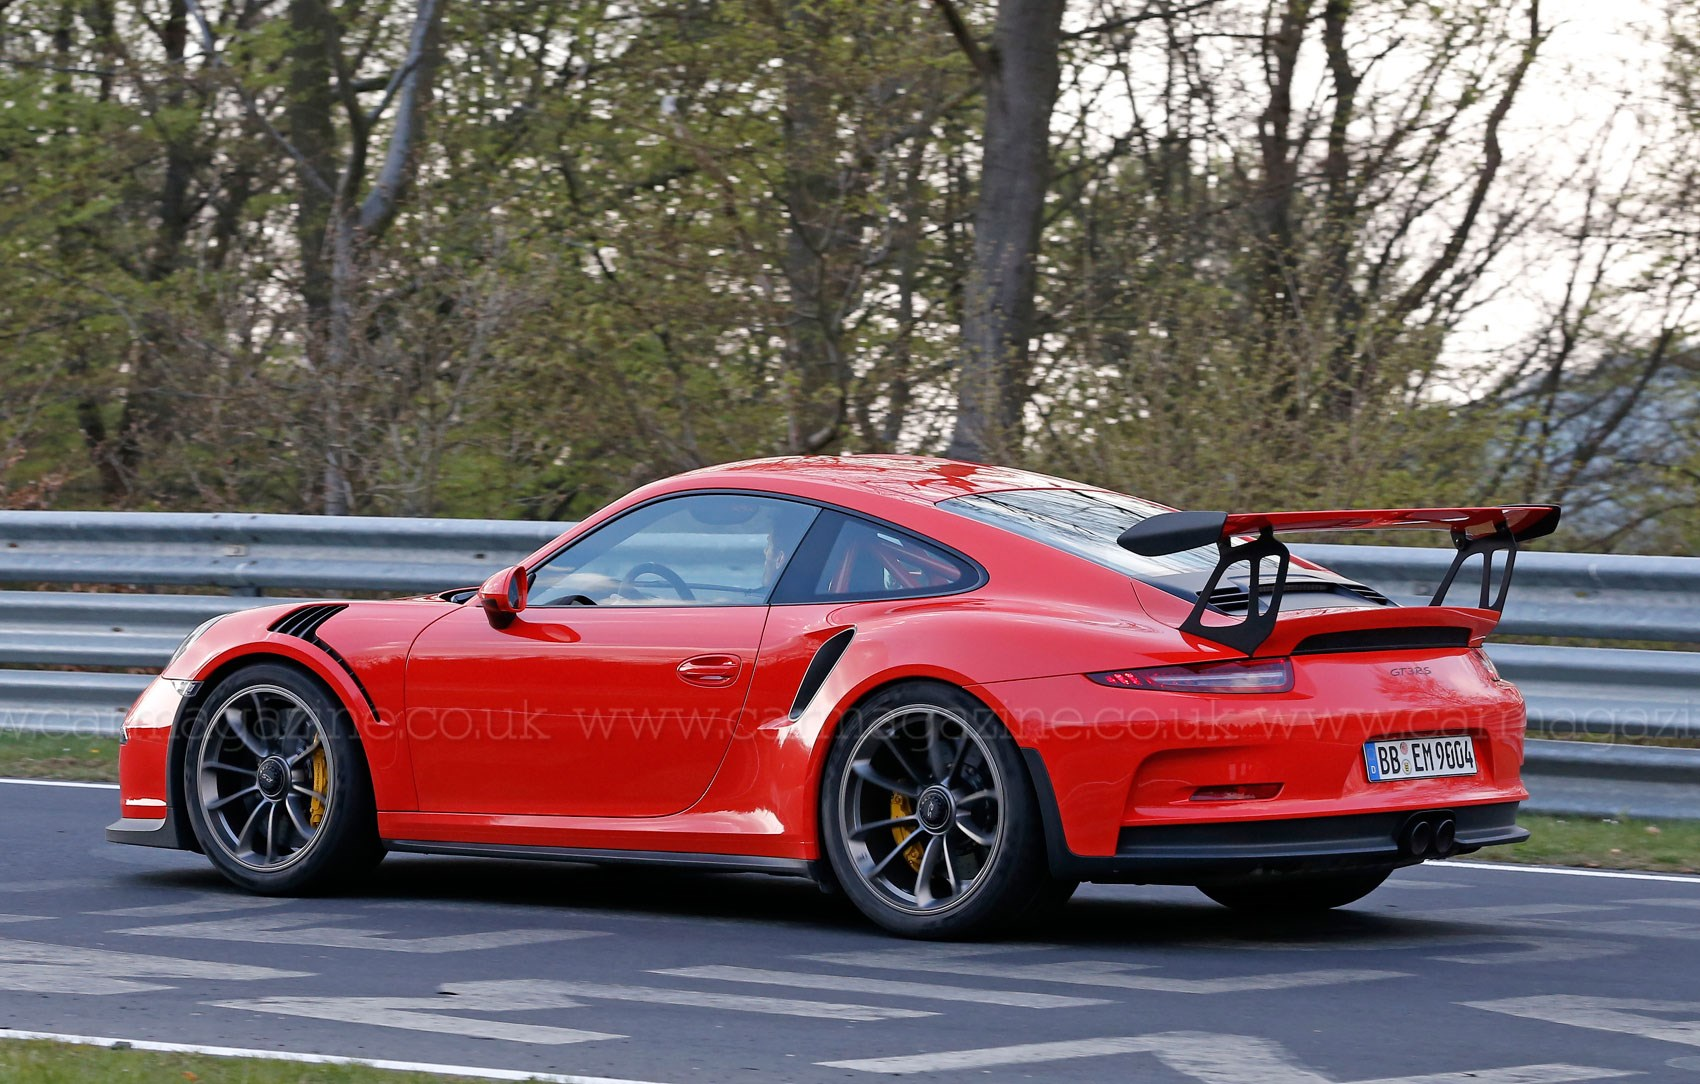 Mark Webber Spotted Driving 2015 Porsche 911 Gt3 Rs At The